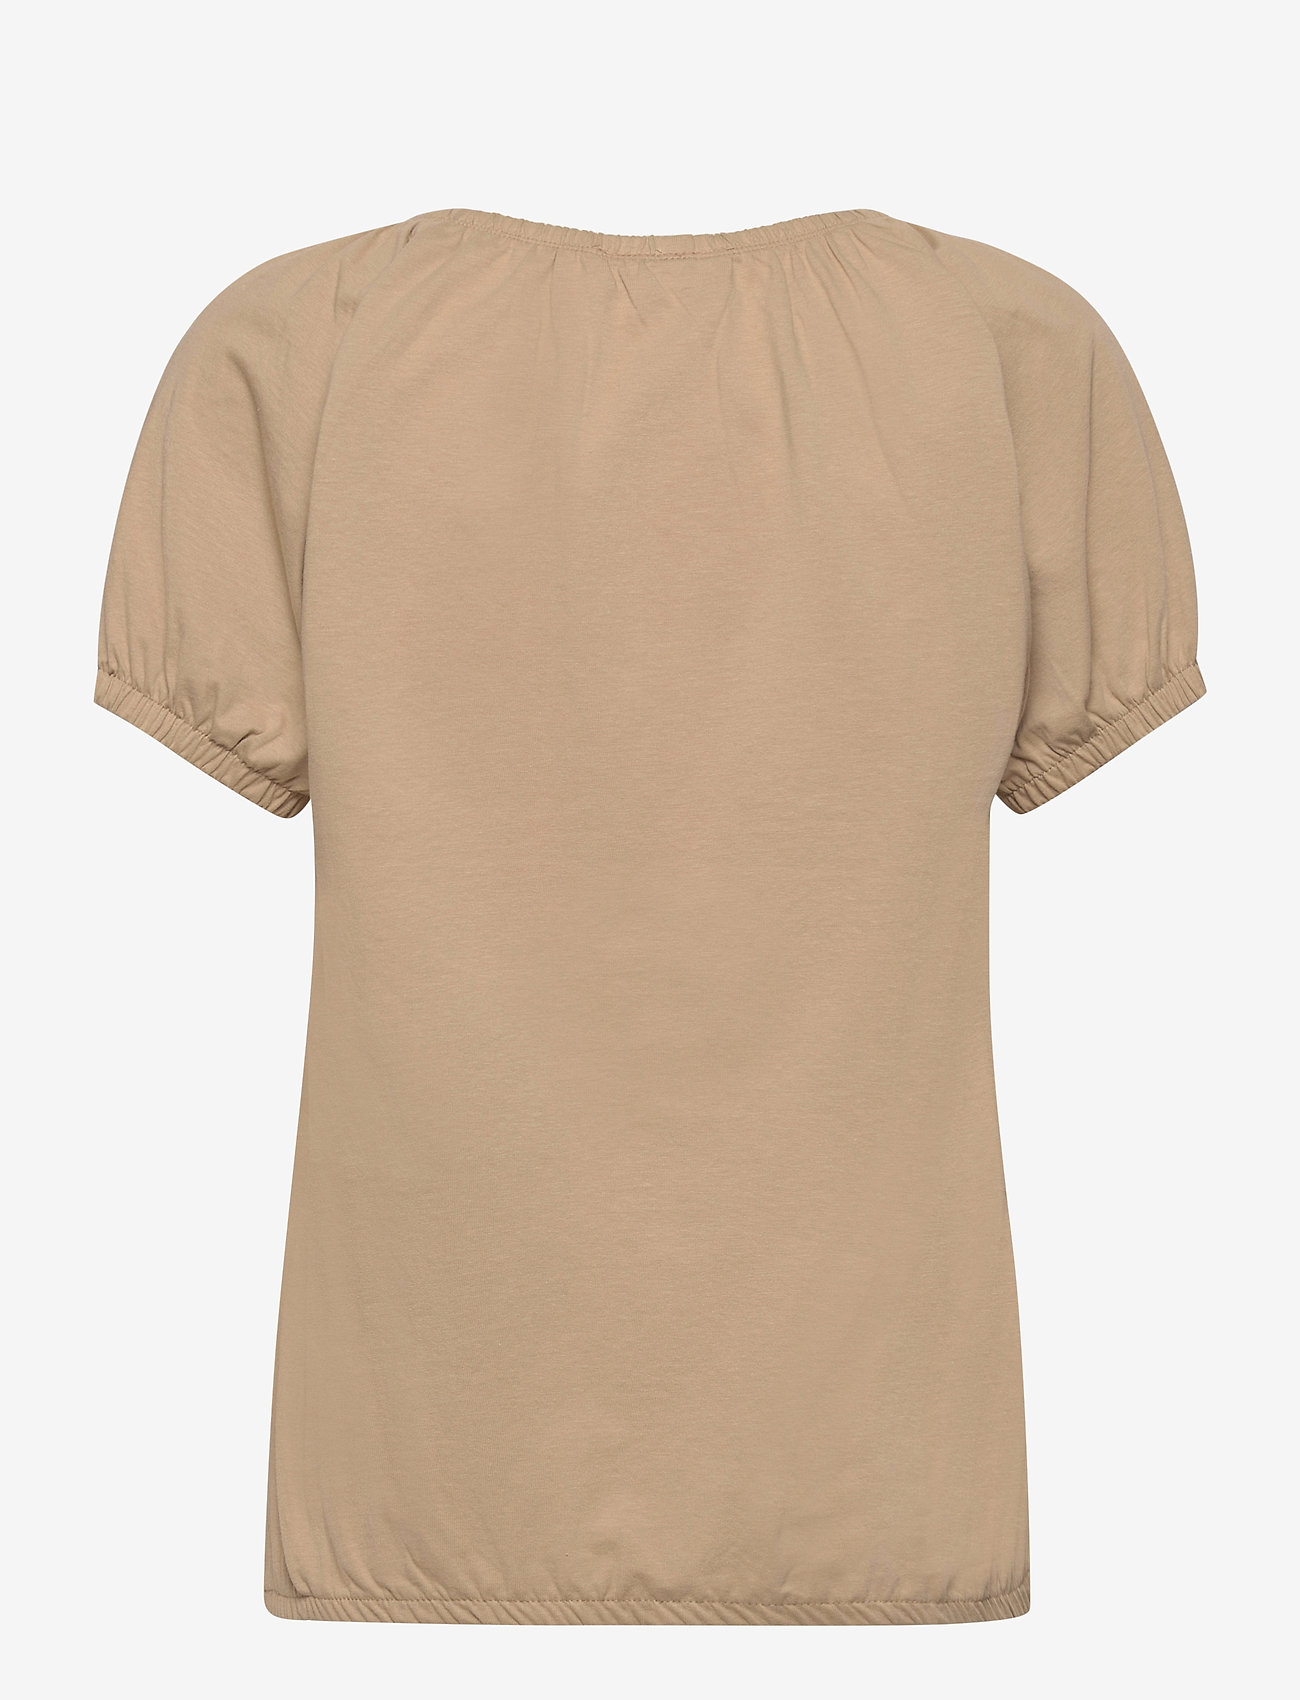 FREE/QUENT - BETINA-O-SS-SOLID - t-shirts - beige sand as cut - 1